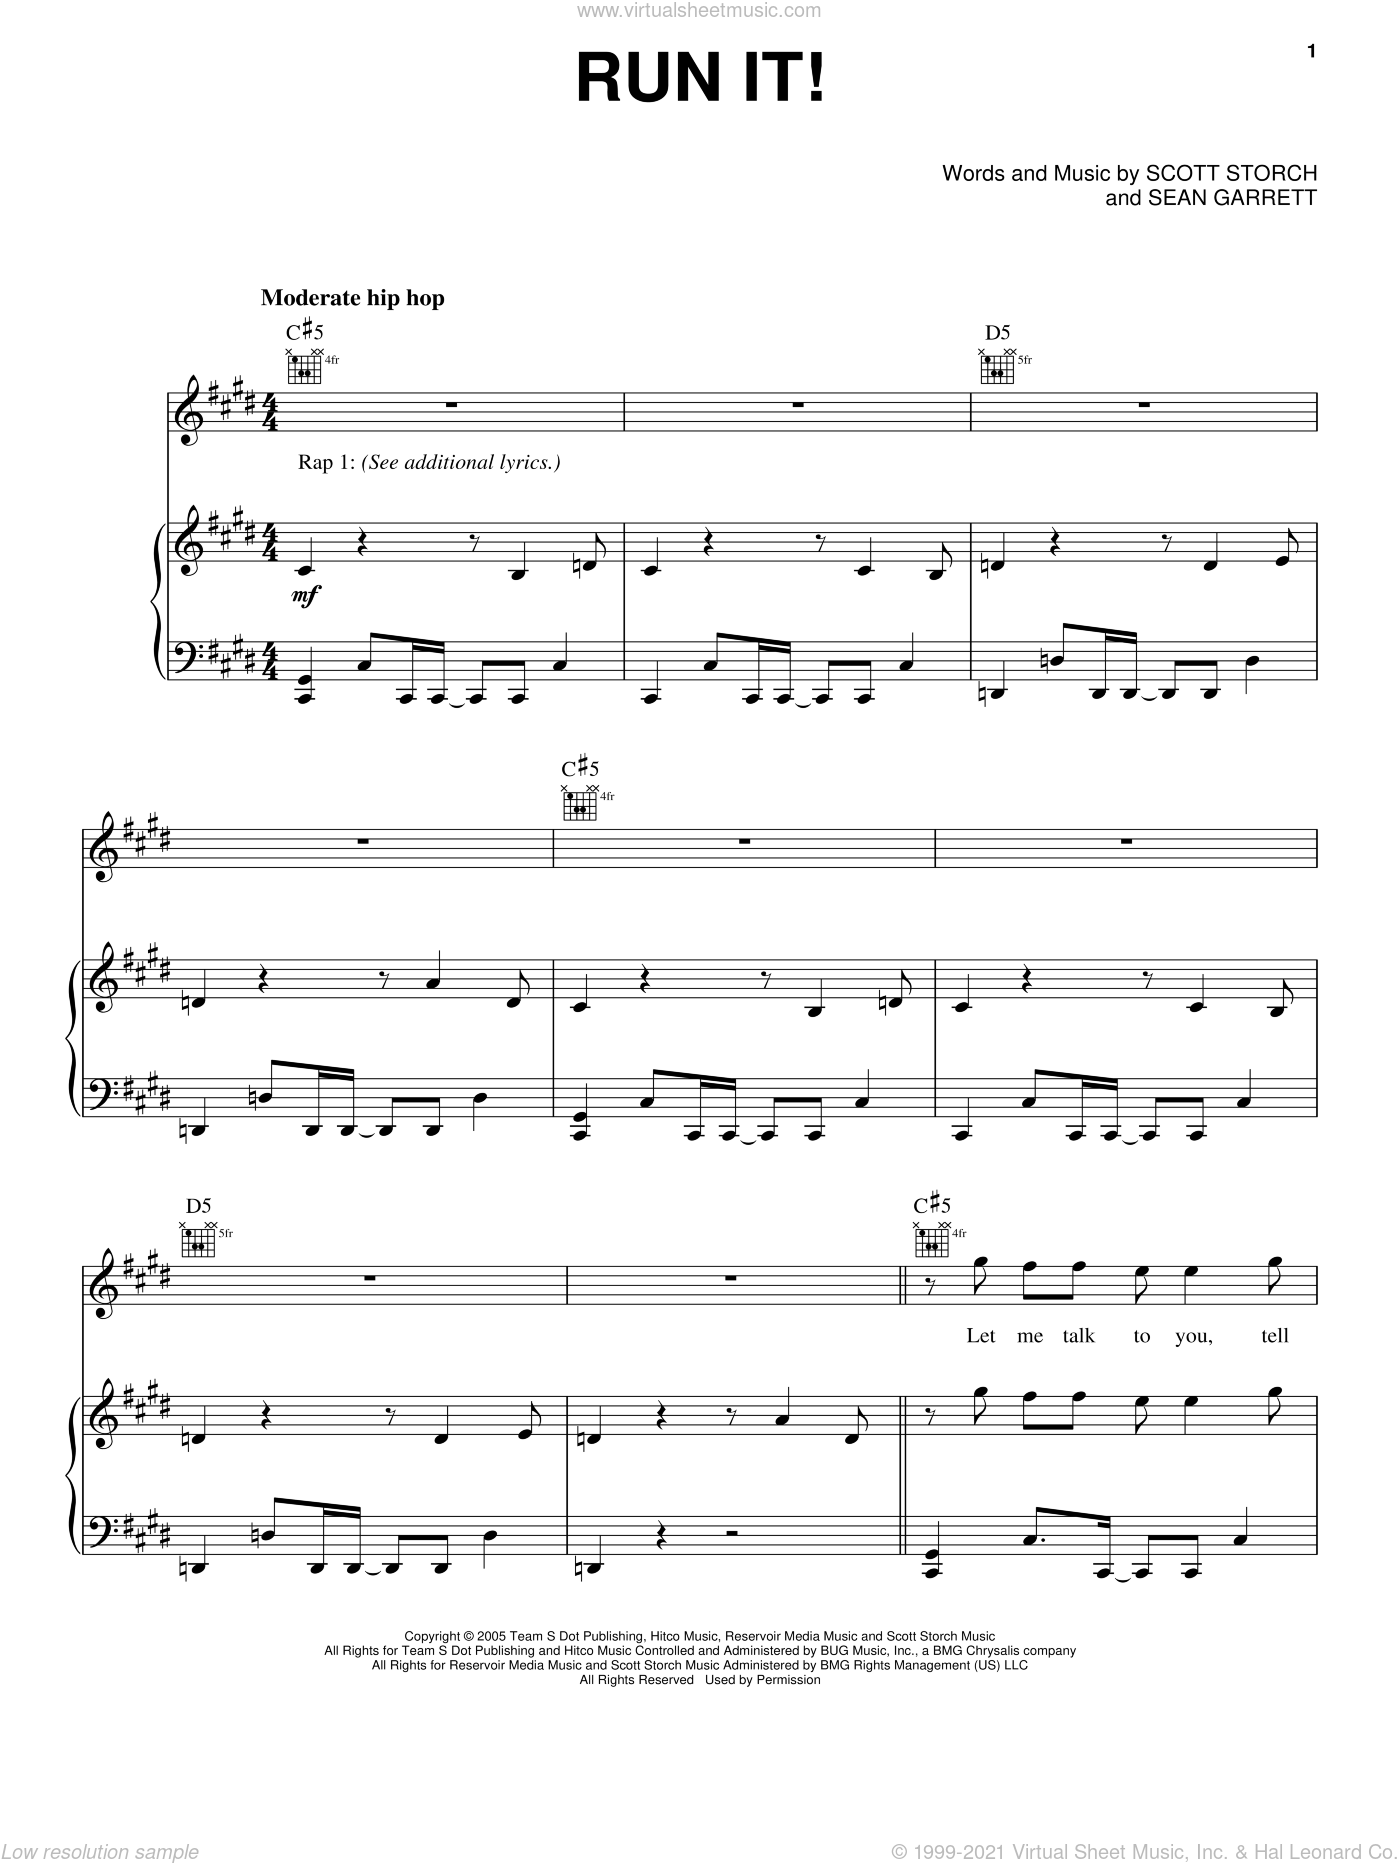 Run It! sheet music for voice, piano or guitar by Chris Brown, Scott Storch and Sean Garrett, intermediate skill level